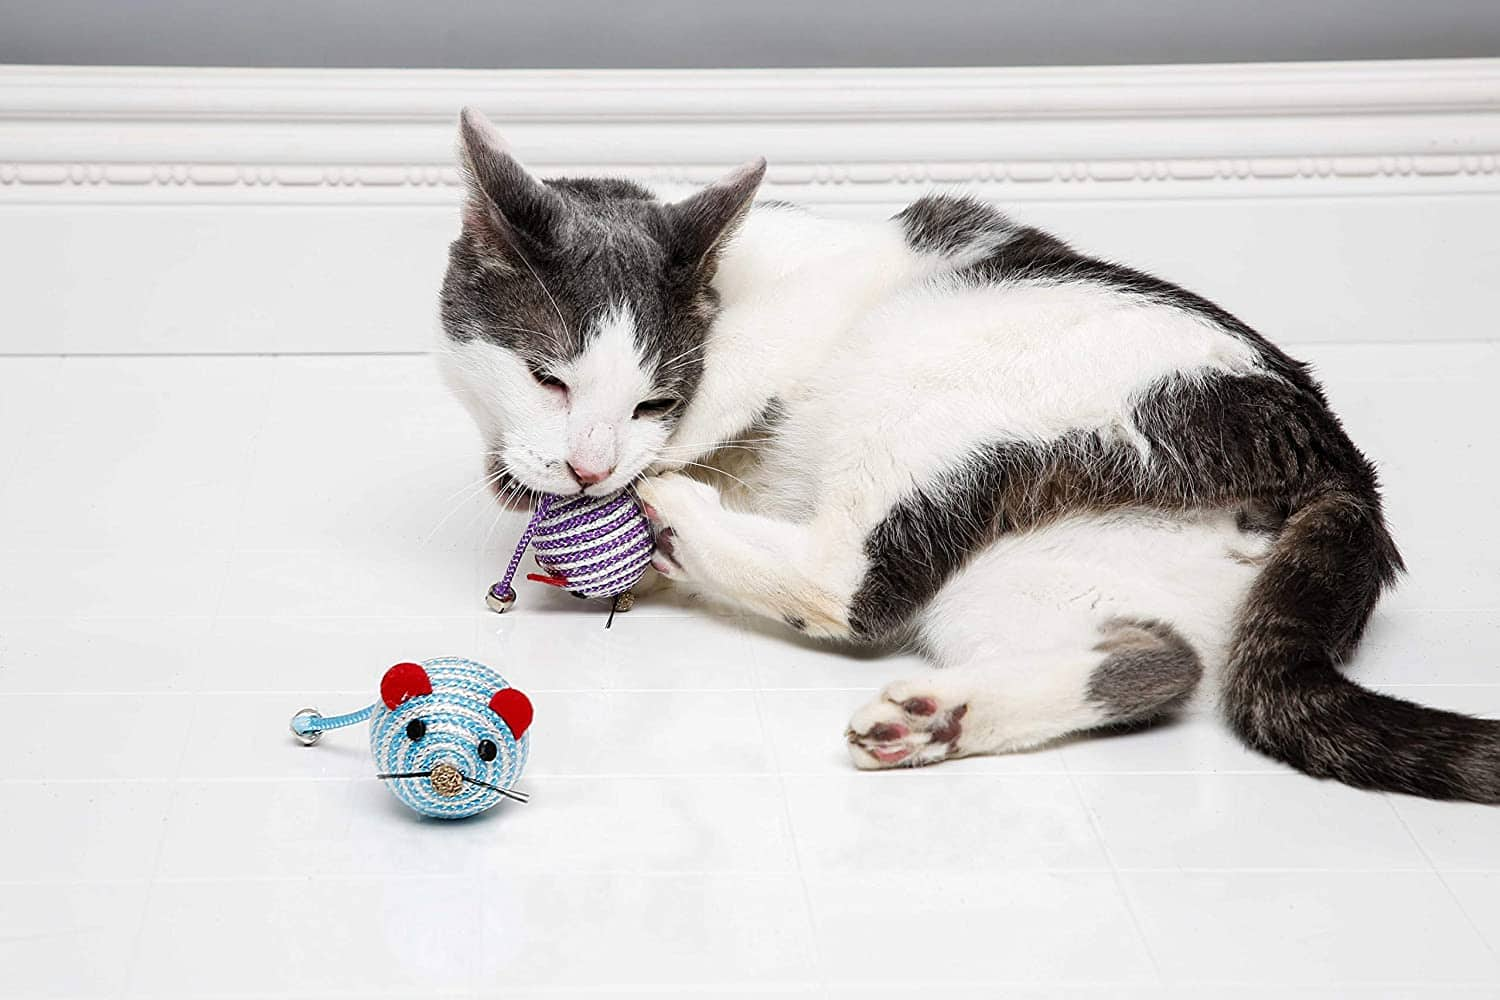 Hartz Cattraction Silver Vine & Catnip Cat Toys: Bell Mouse $1.97 FS w/ Prime